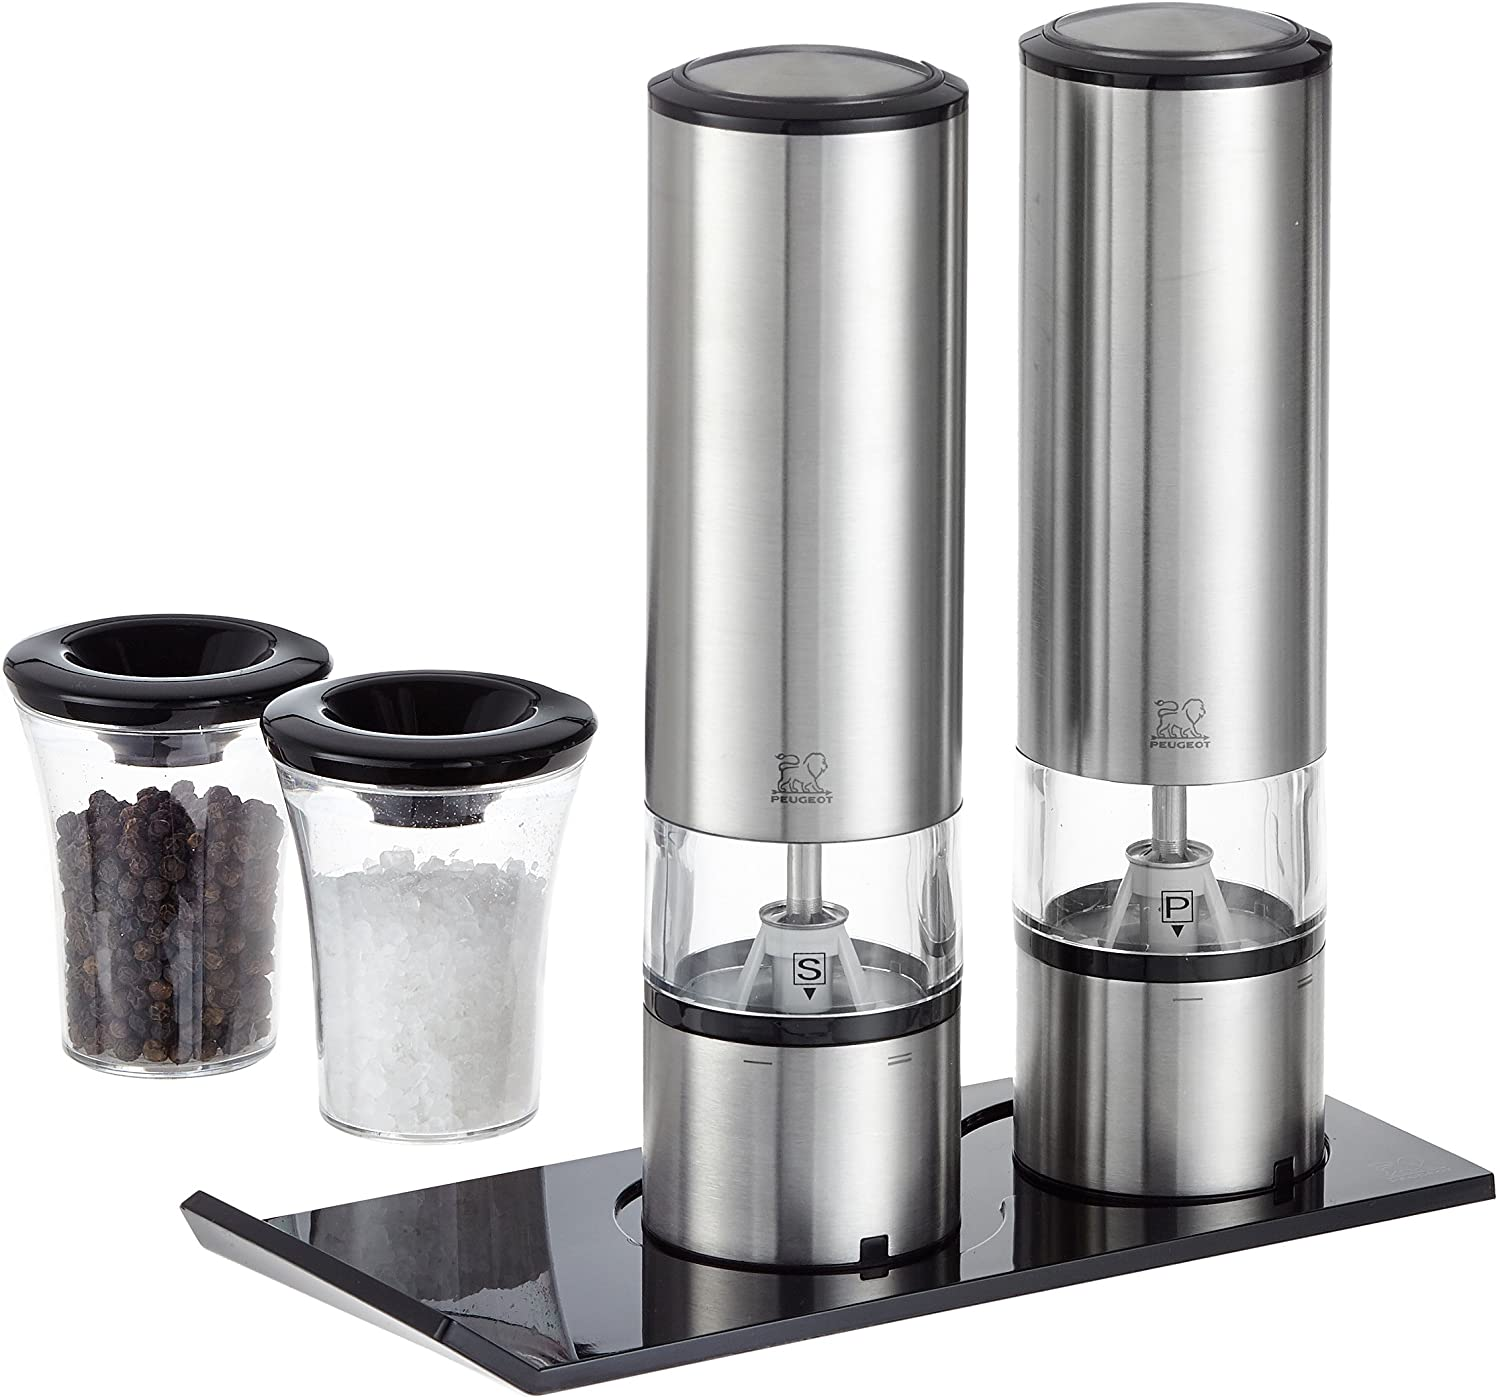 Peugeot Elis Sense Duo Electric Salt Mill & Pepper Mill Set 20cm